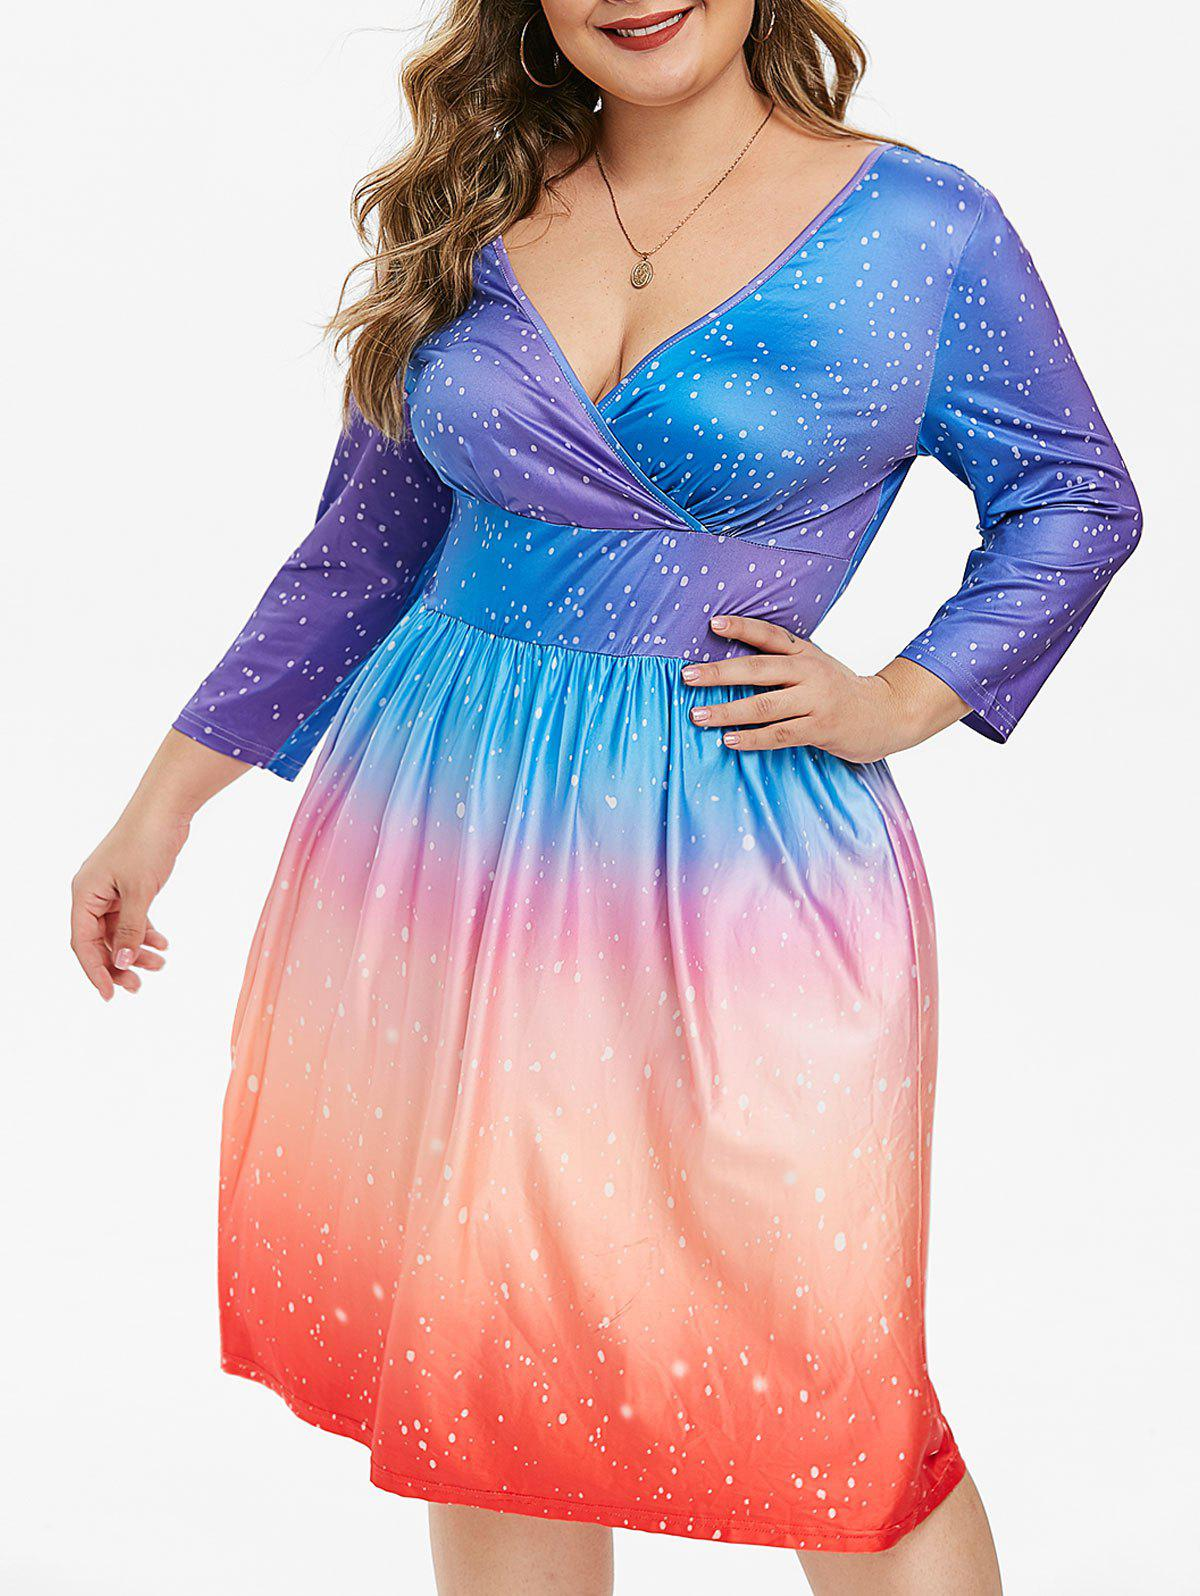 Plus Size Plunging Neckline Dotted Ombre Color Dress - SILK BLUE 4X